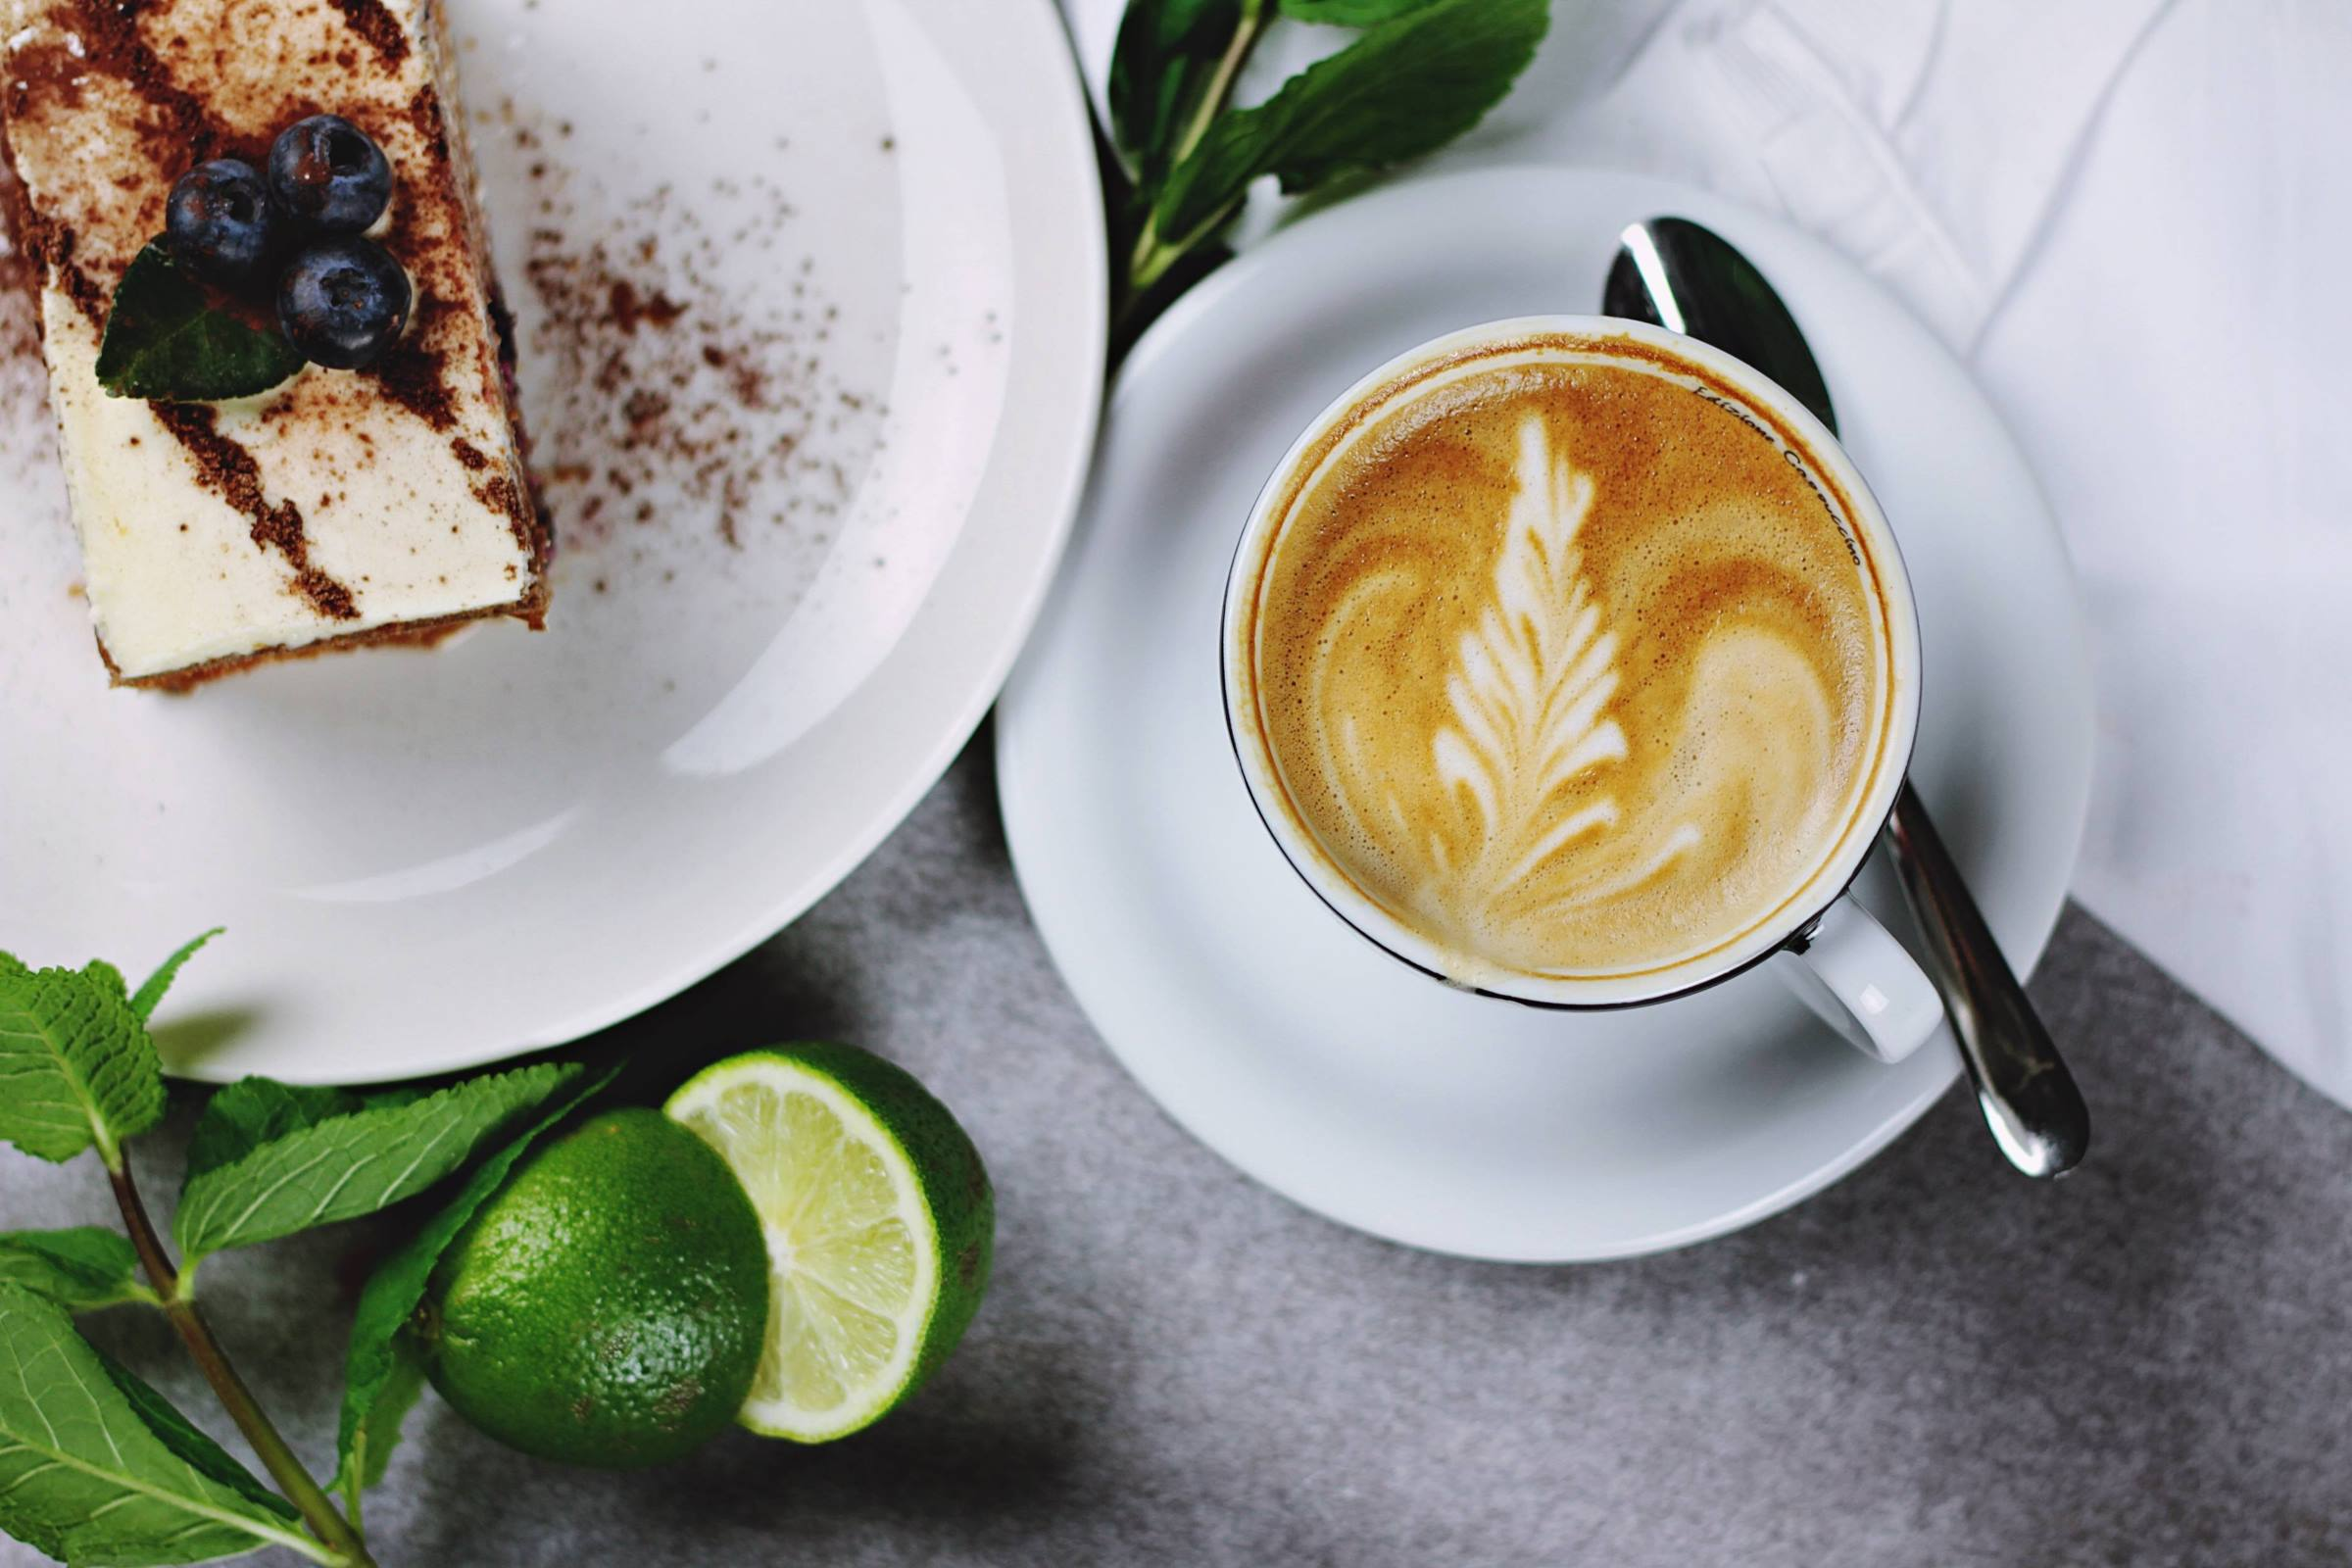 Cappuccino coffee and cake